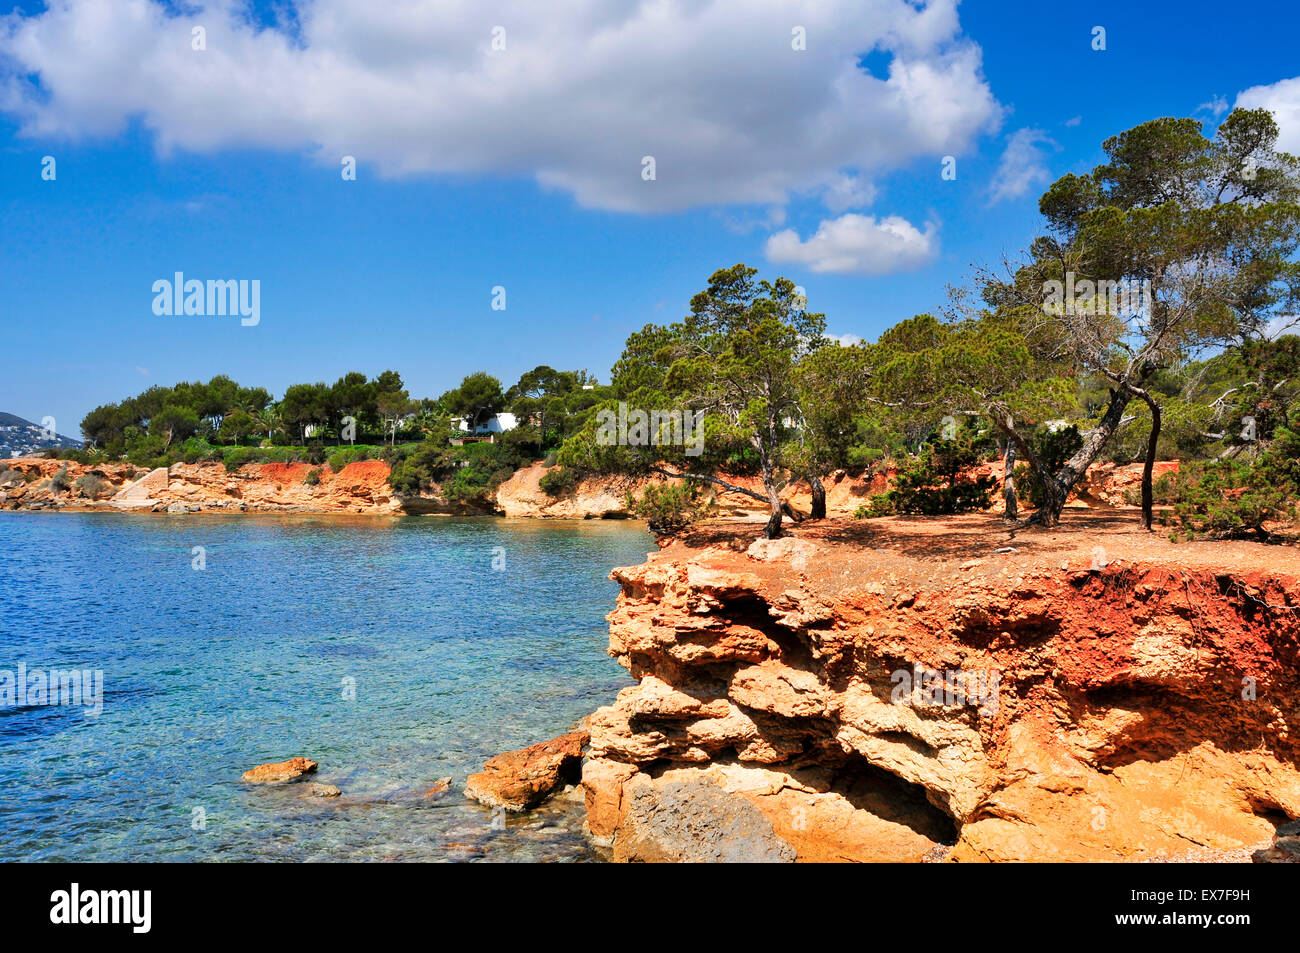 a view of the Mediterranean Sea and a calm scene in the northeastern coast of Ibiza Island, in the Balearic Islands, - Stock Image